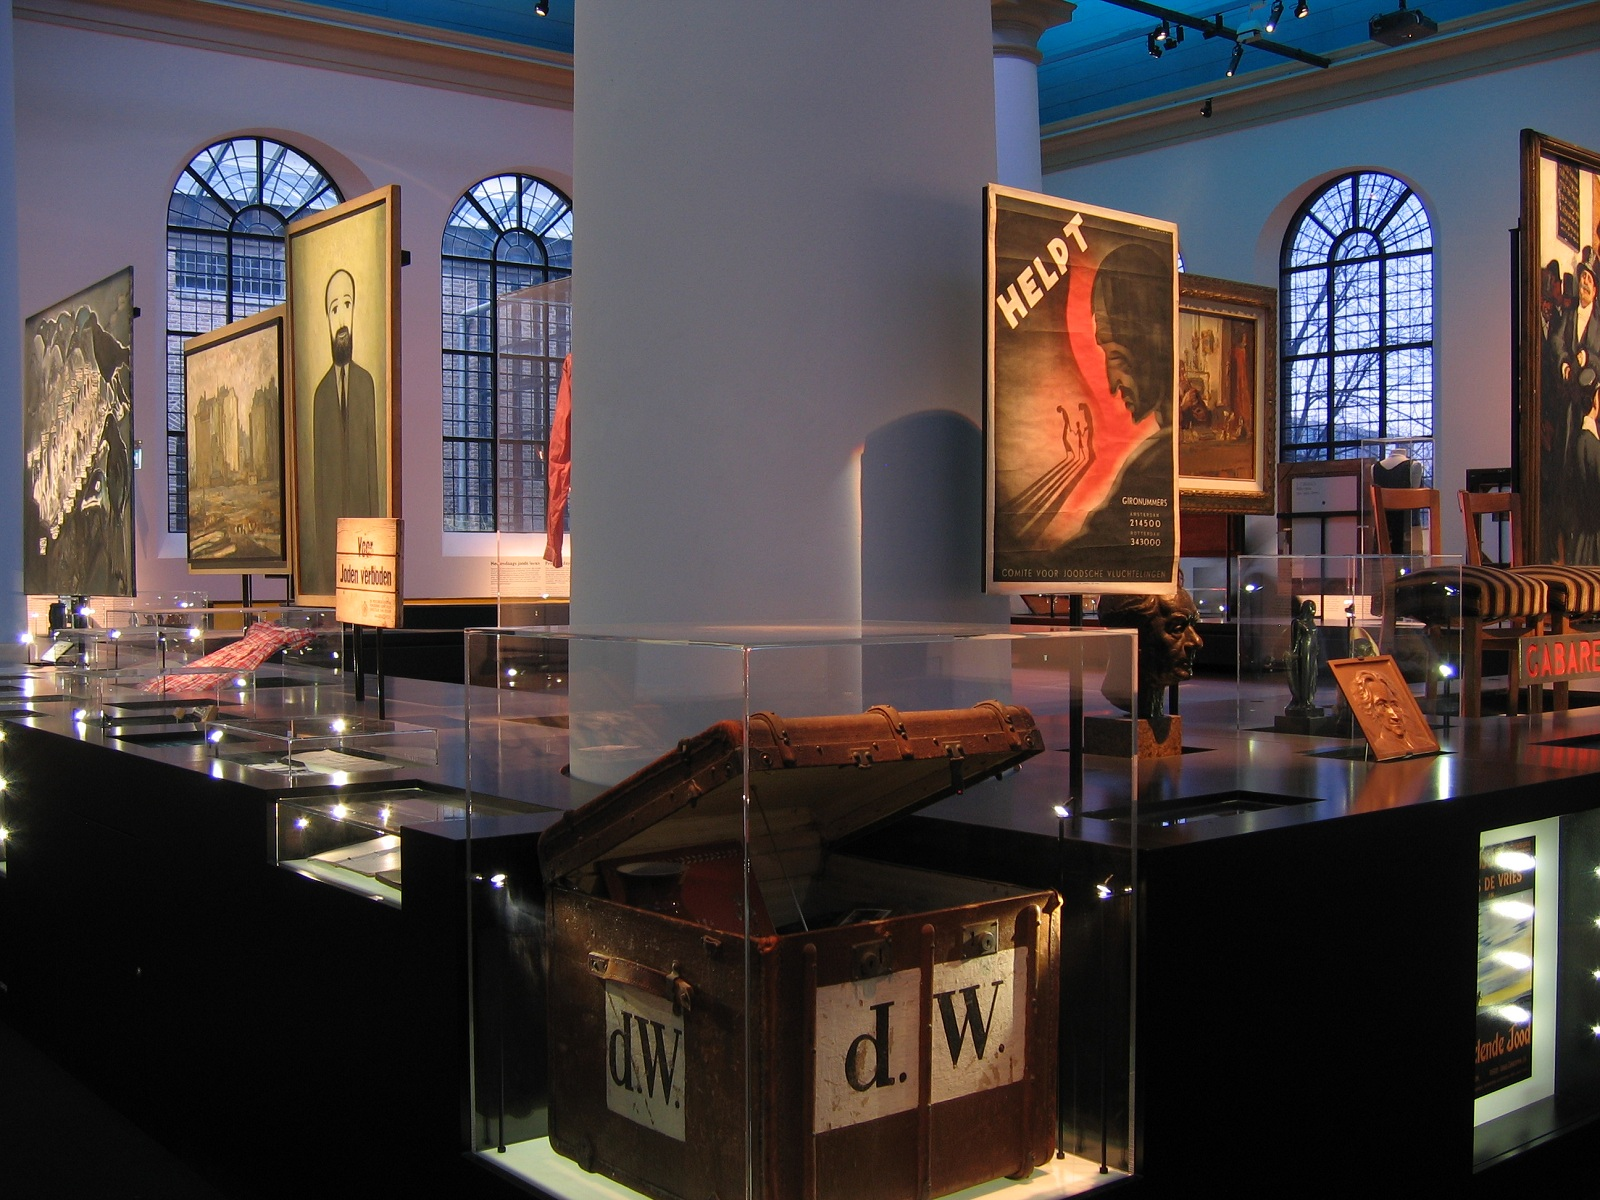 Museum Holiday, Joods Historisch Museum, Amsterdam, The Netherlands, Interior view